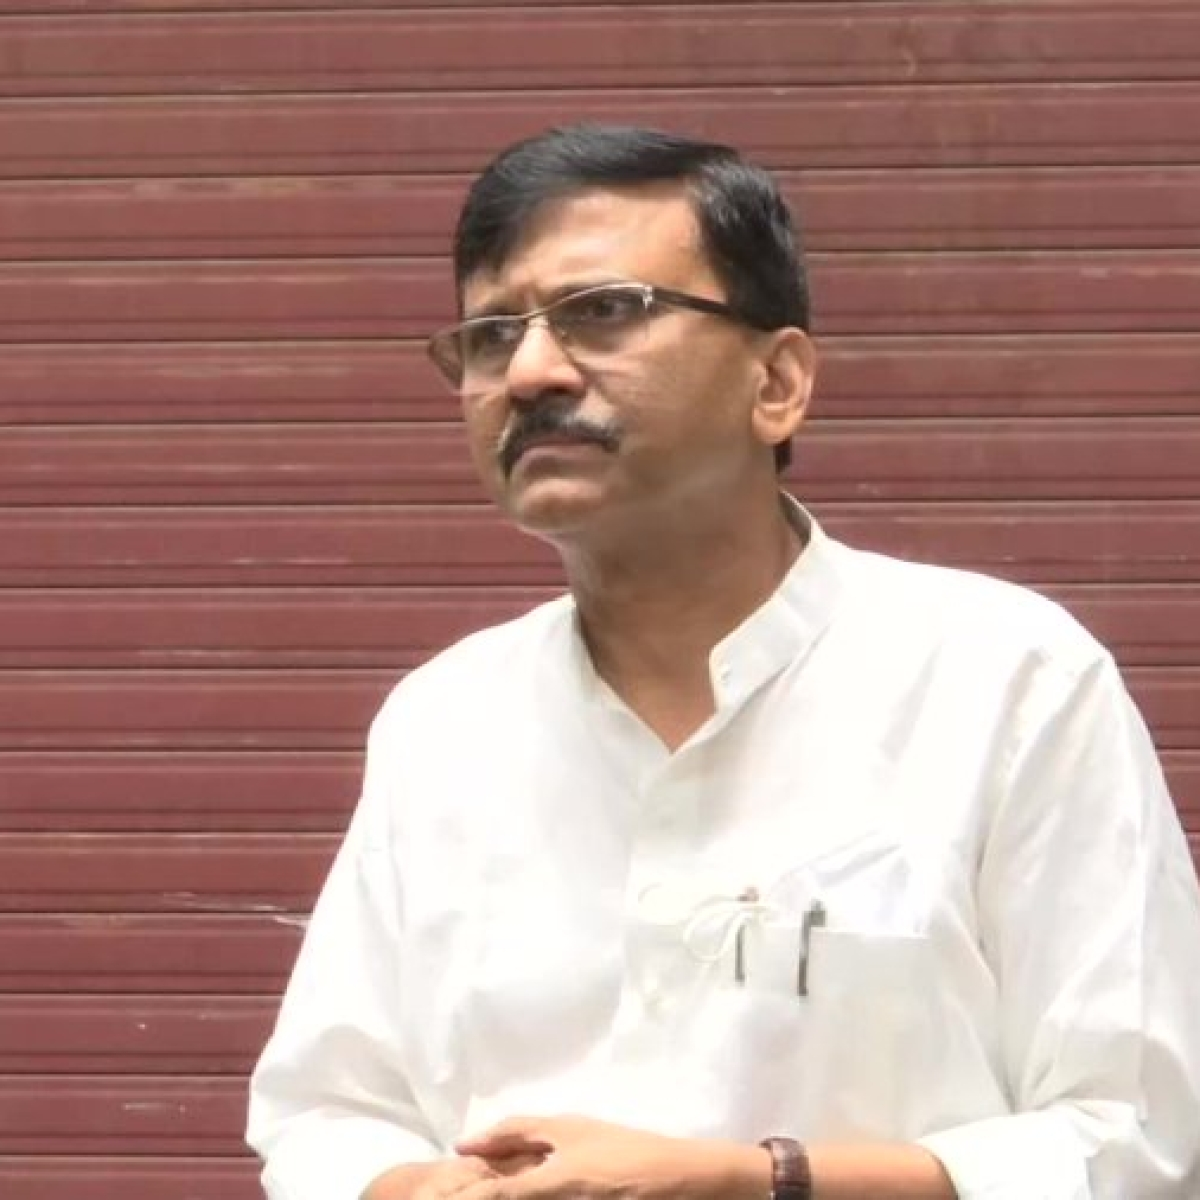 Hathras: Is justice sought only for actress, asks Sanjay Raut